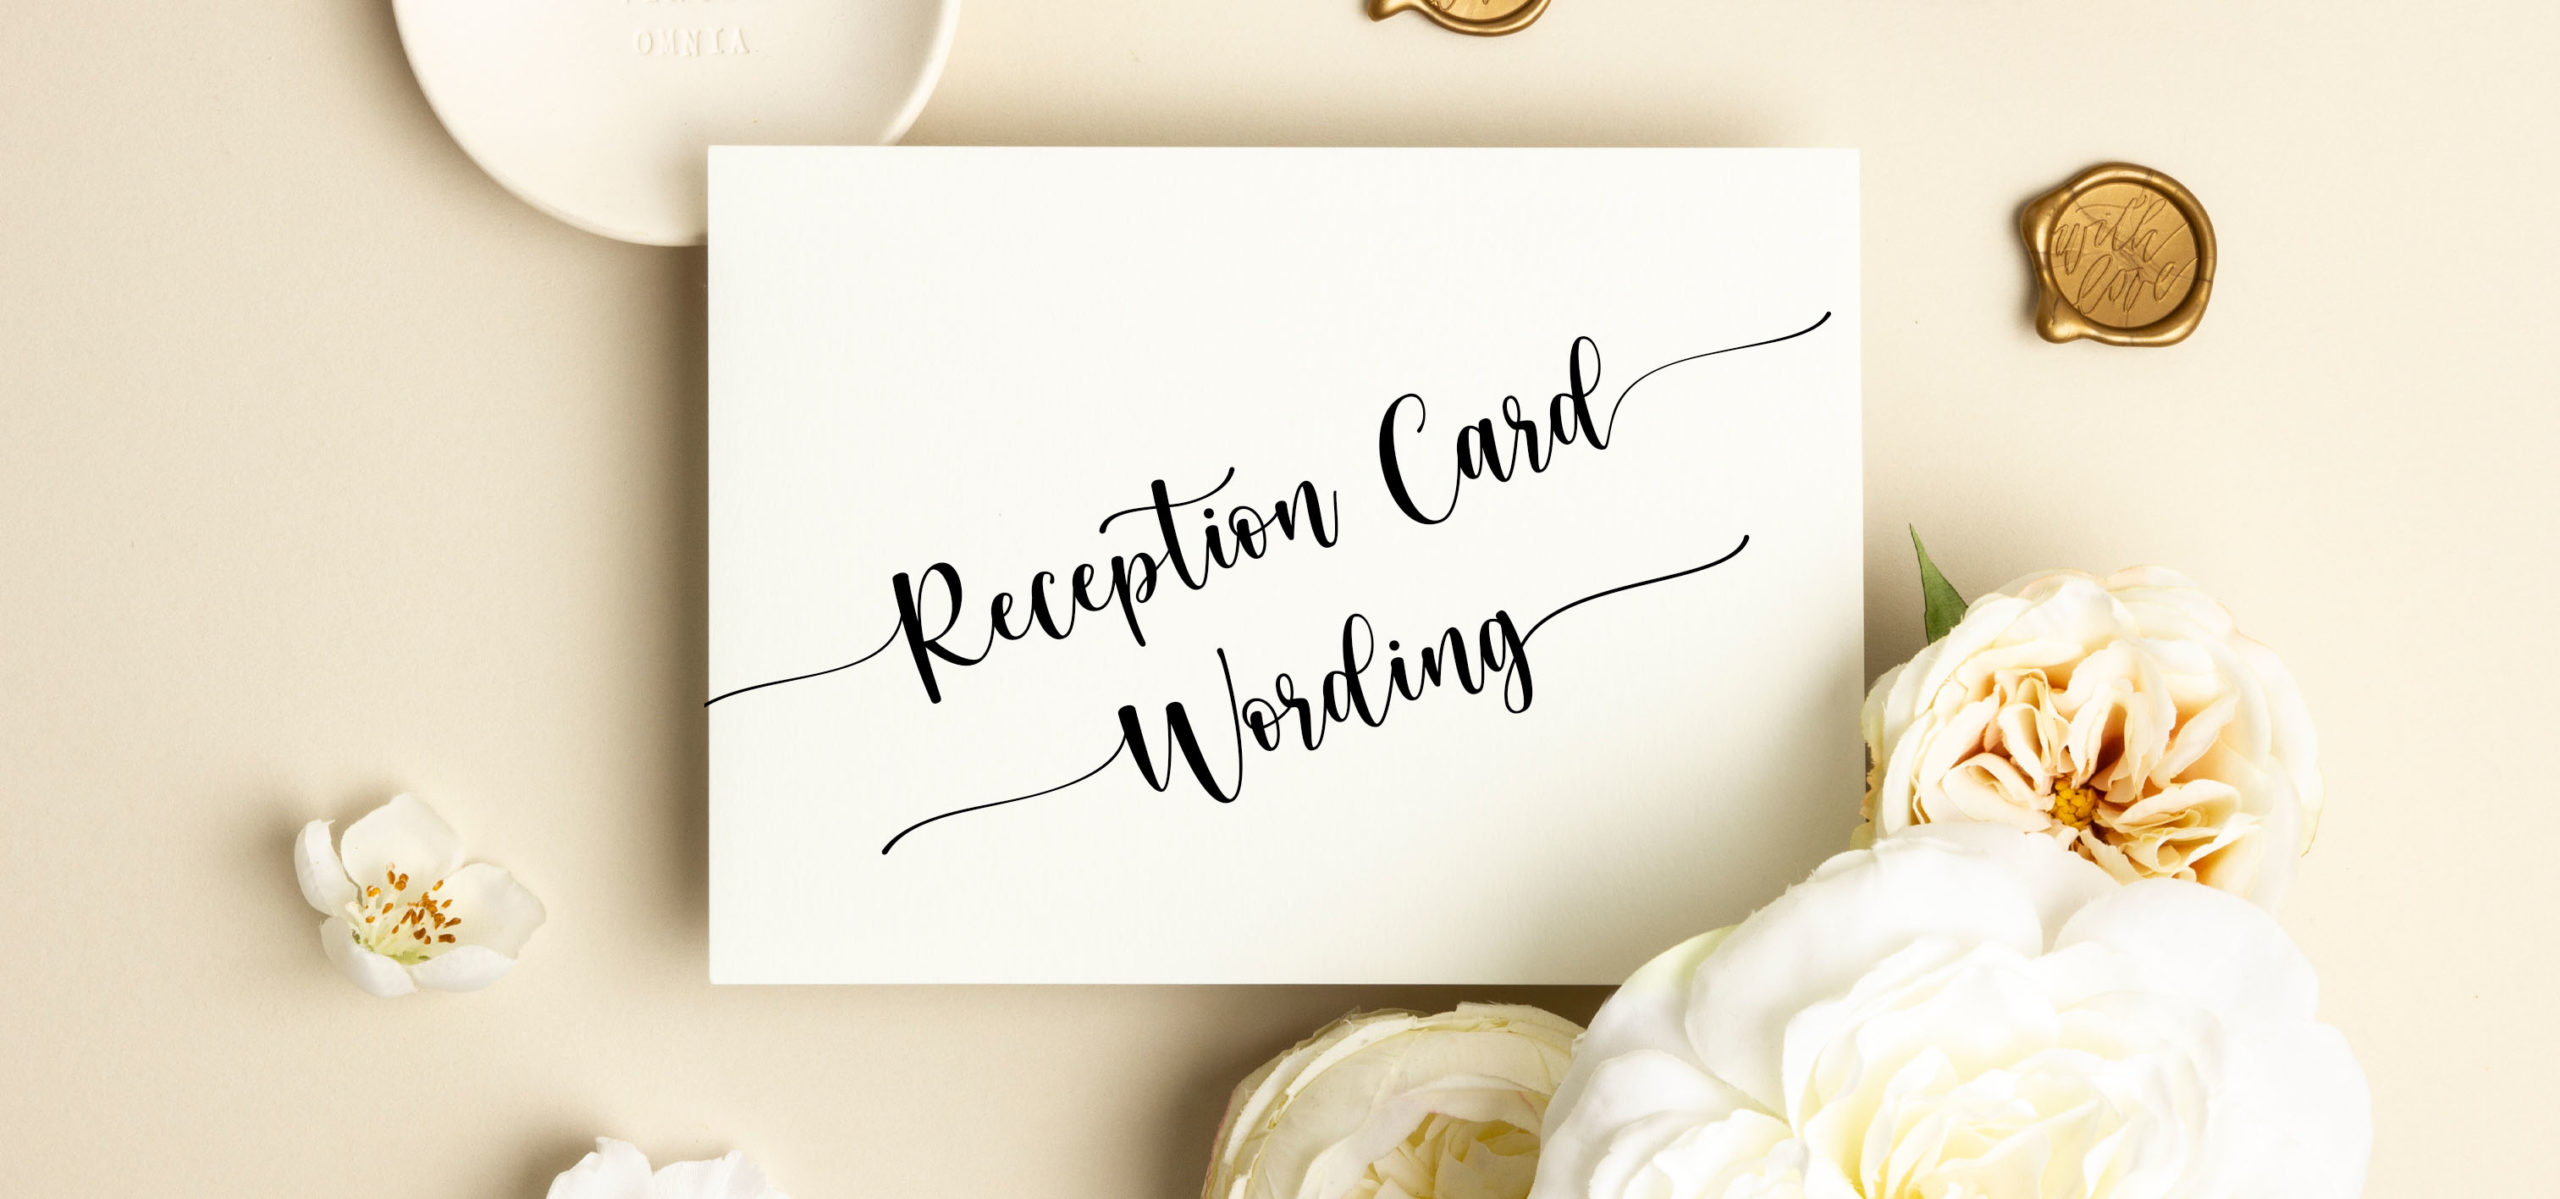 Reception Card Wording